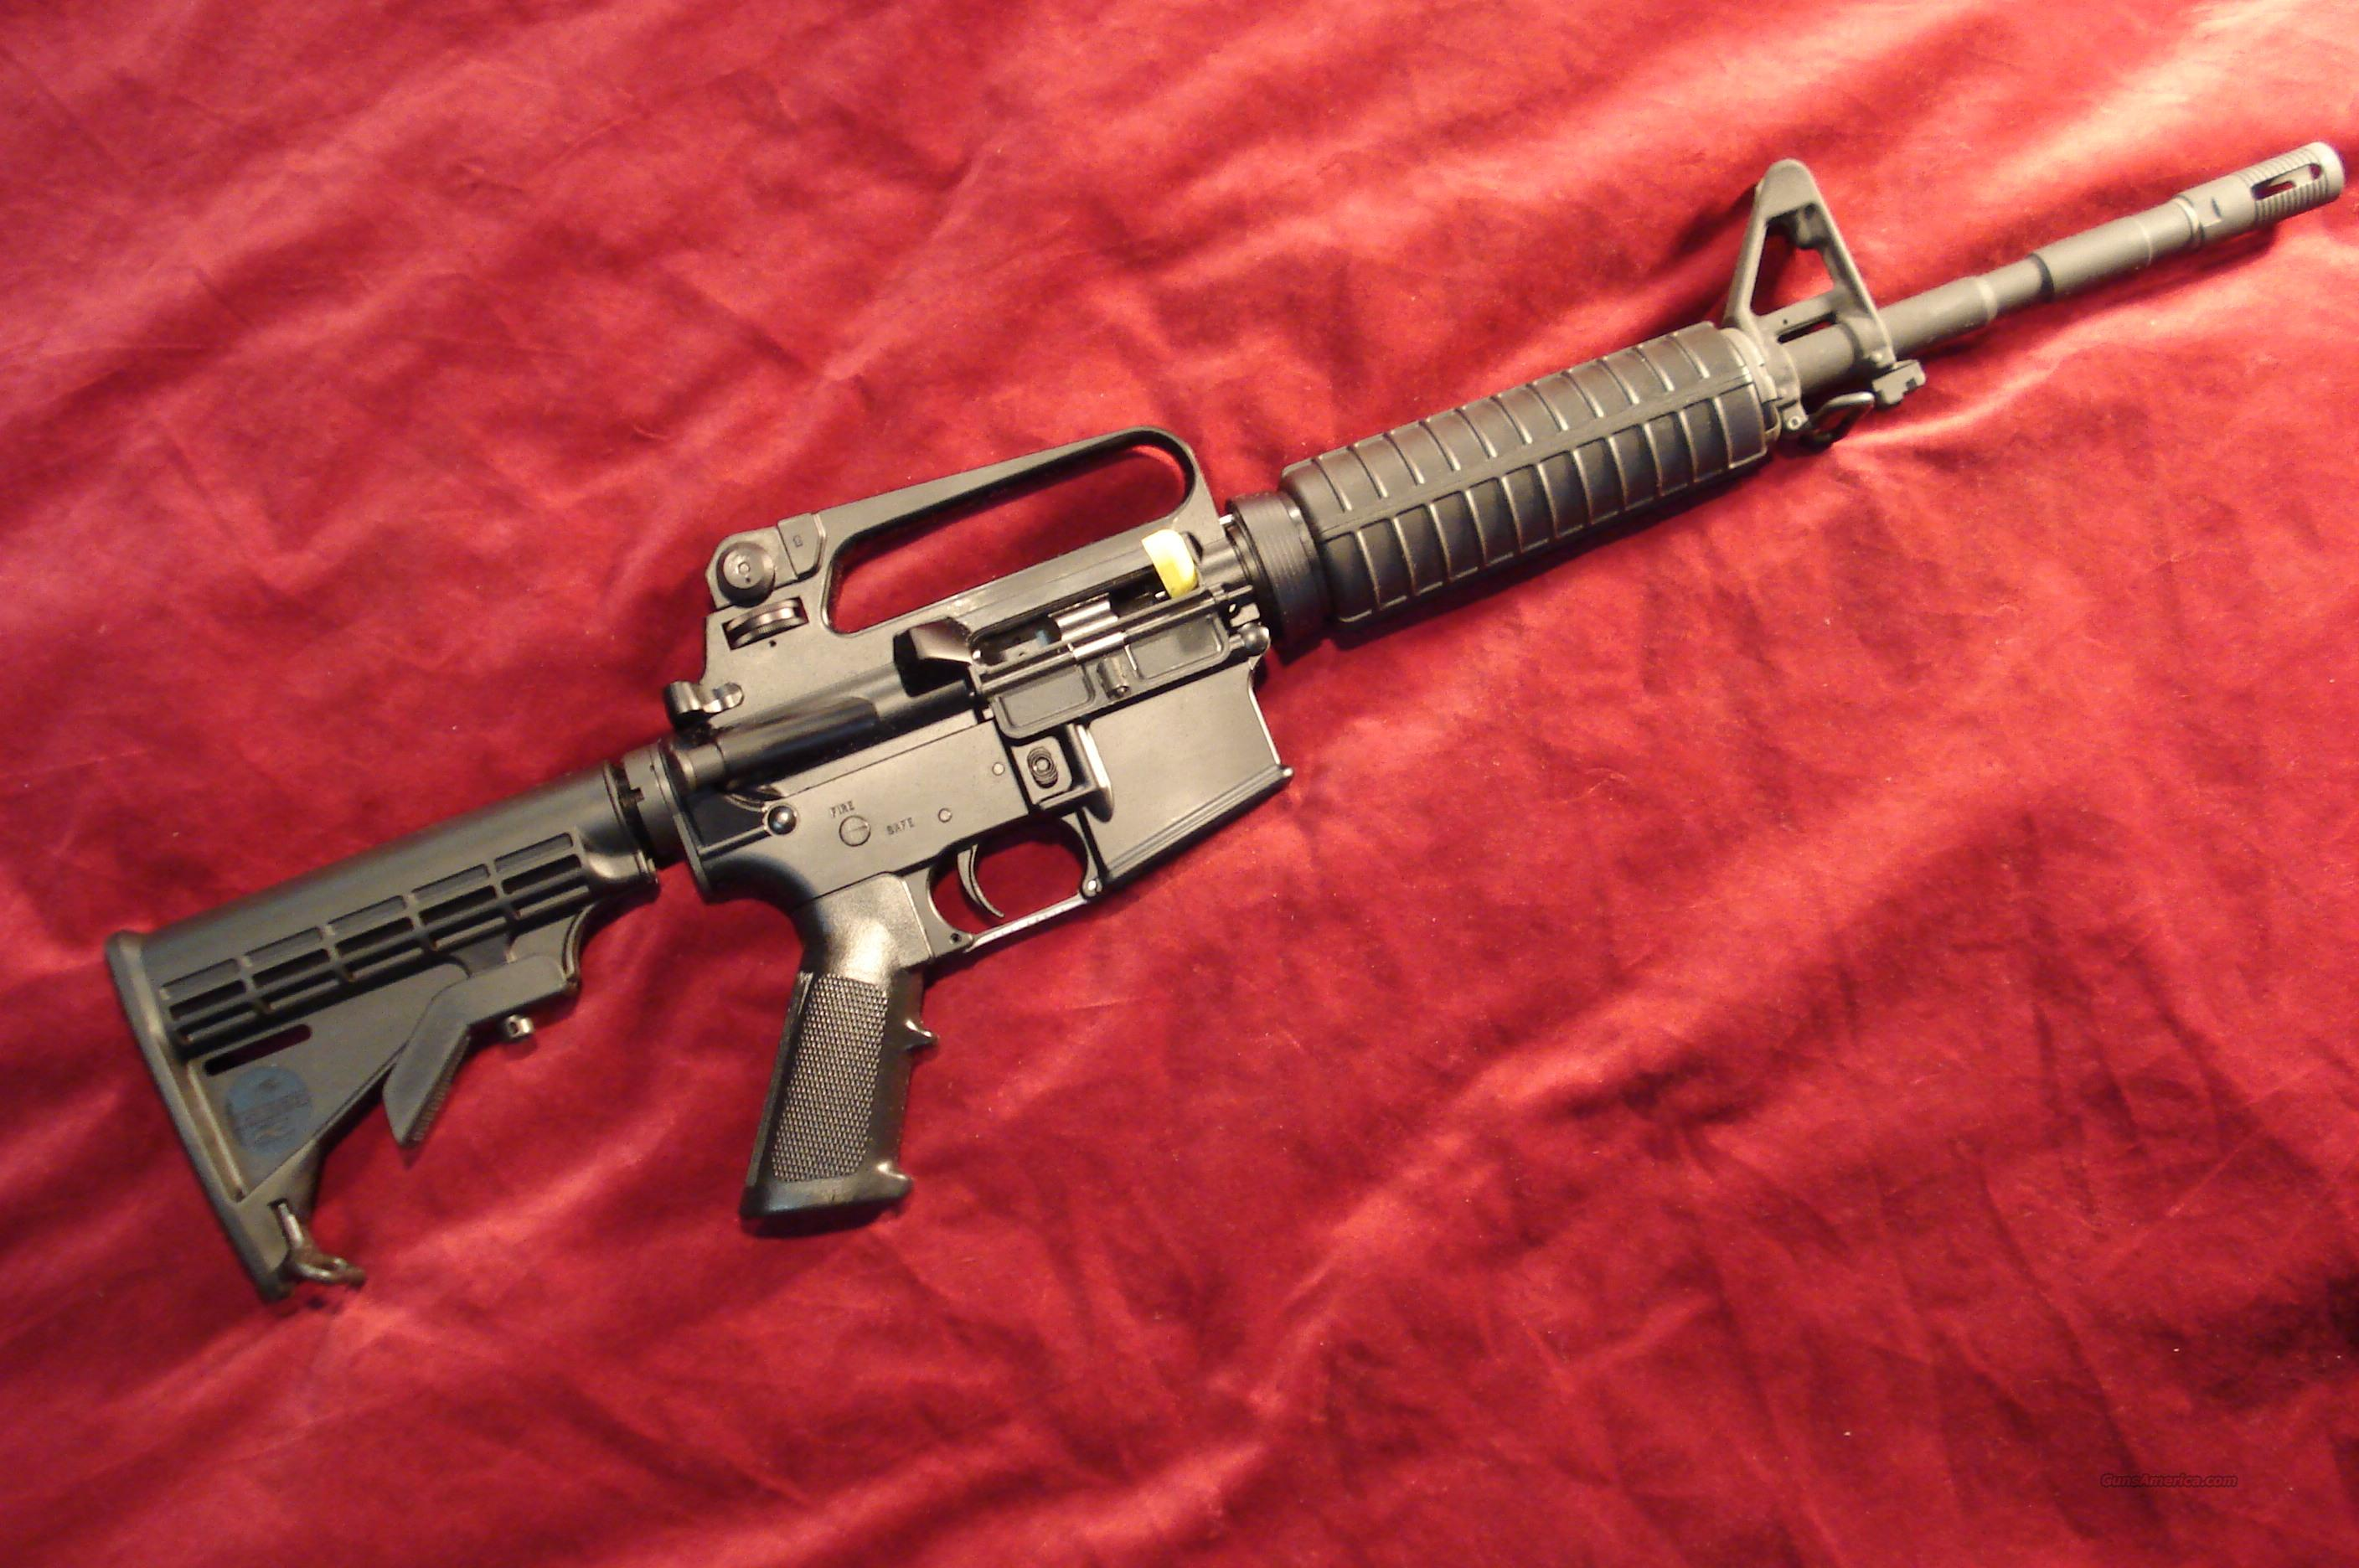 BUSHMASTER M4A2 IZZY CARBINE 223CAL. NEW  Guns > Rifles > Bushmaster Rifles > Complete Rifles